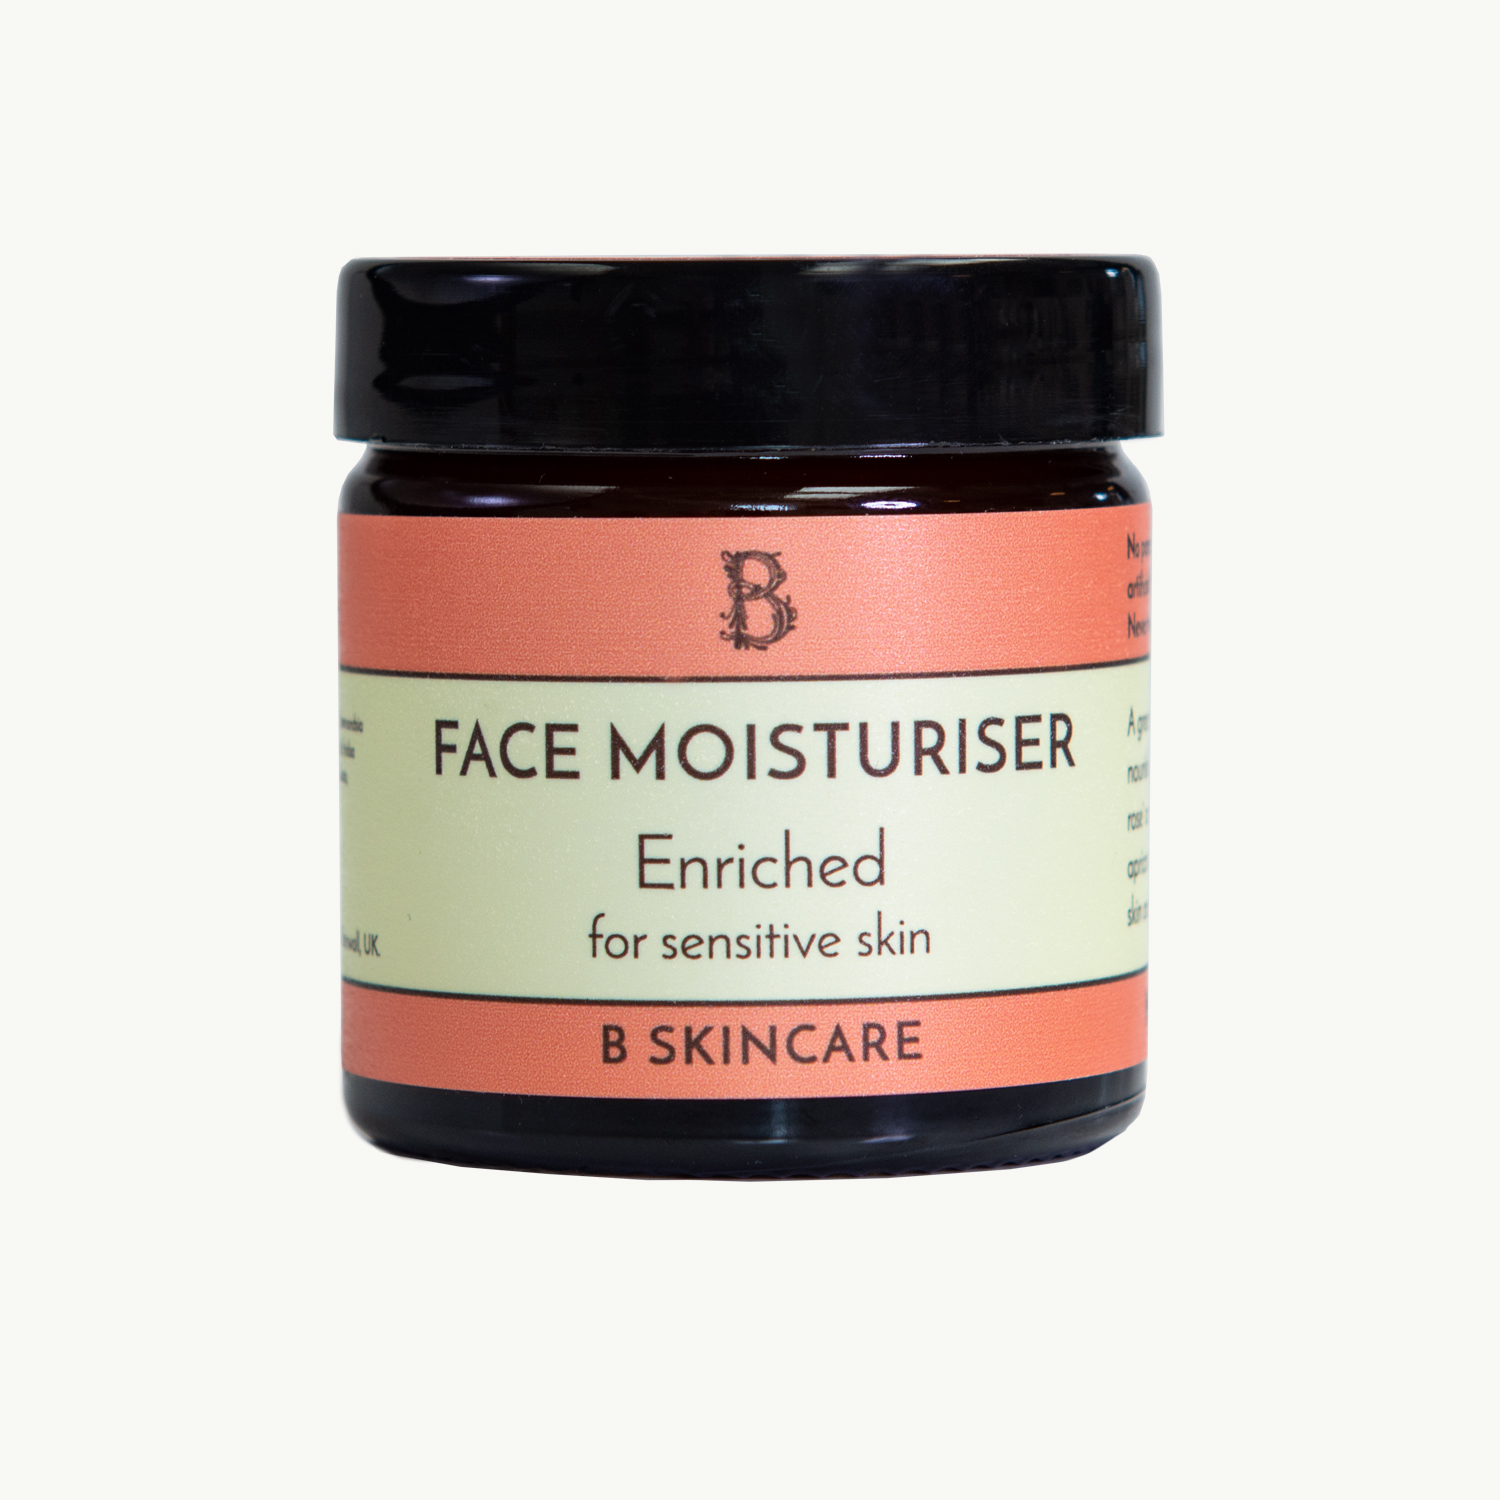 Face Moisturiser Enriched 60ml